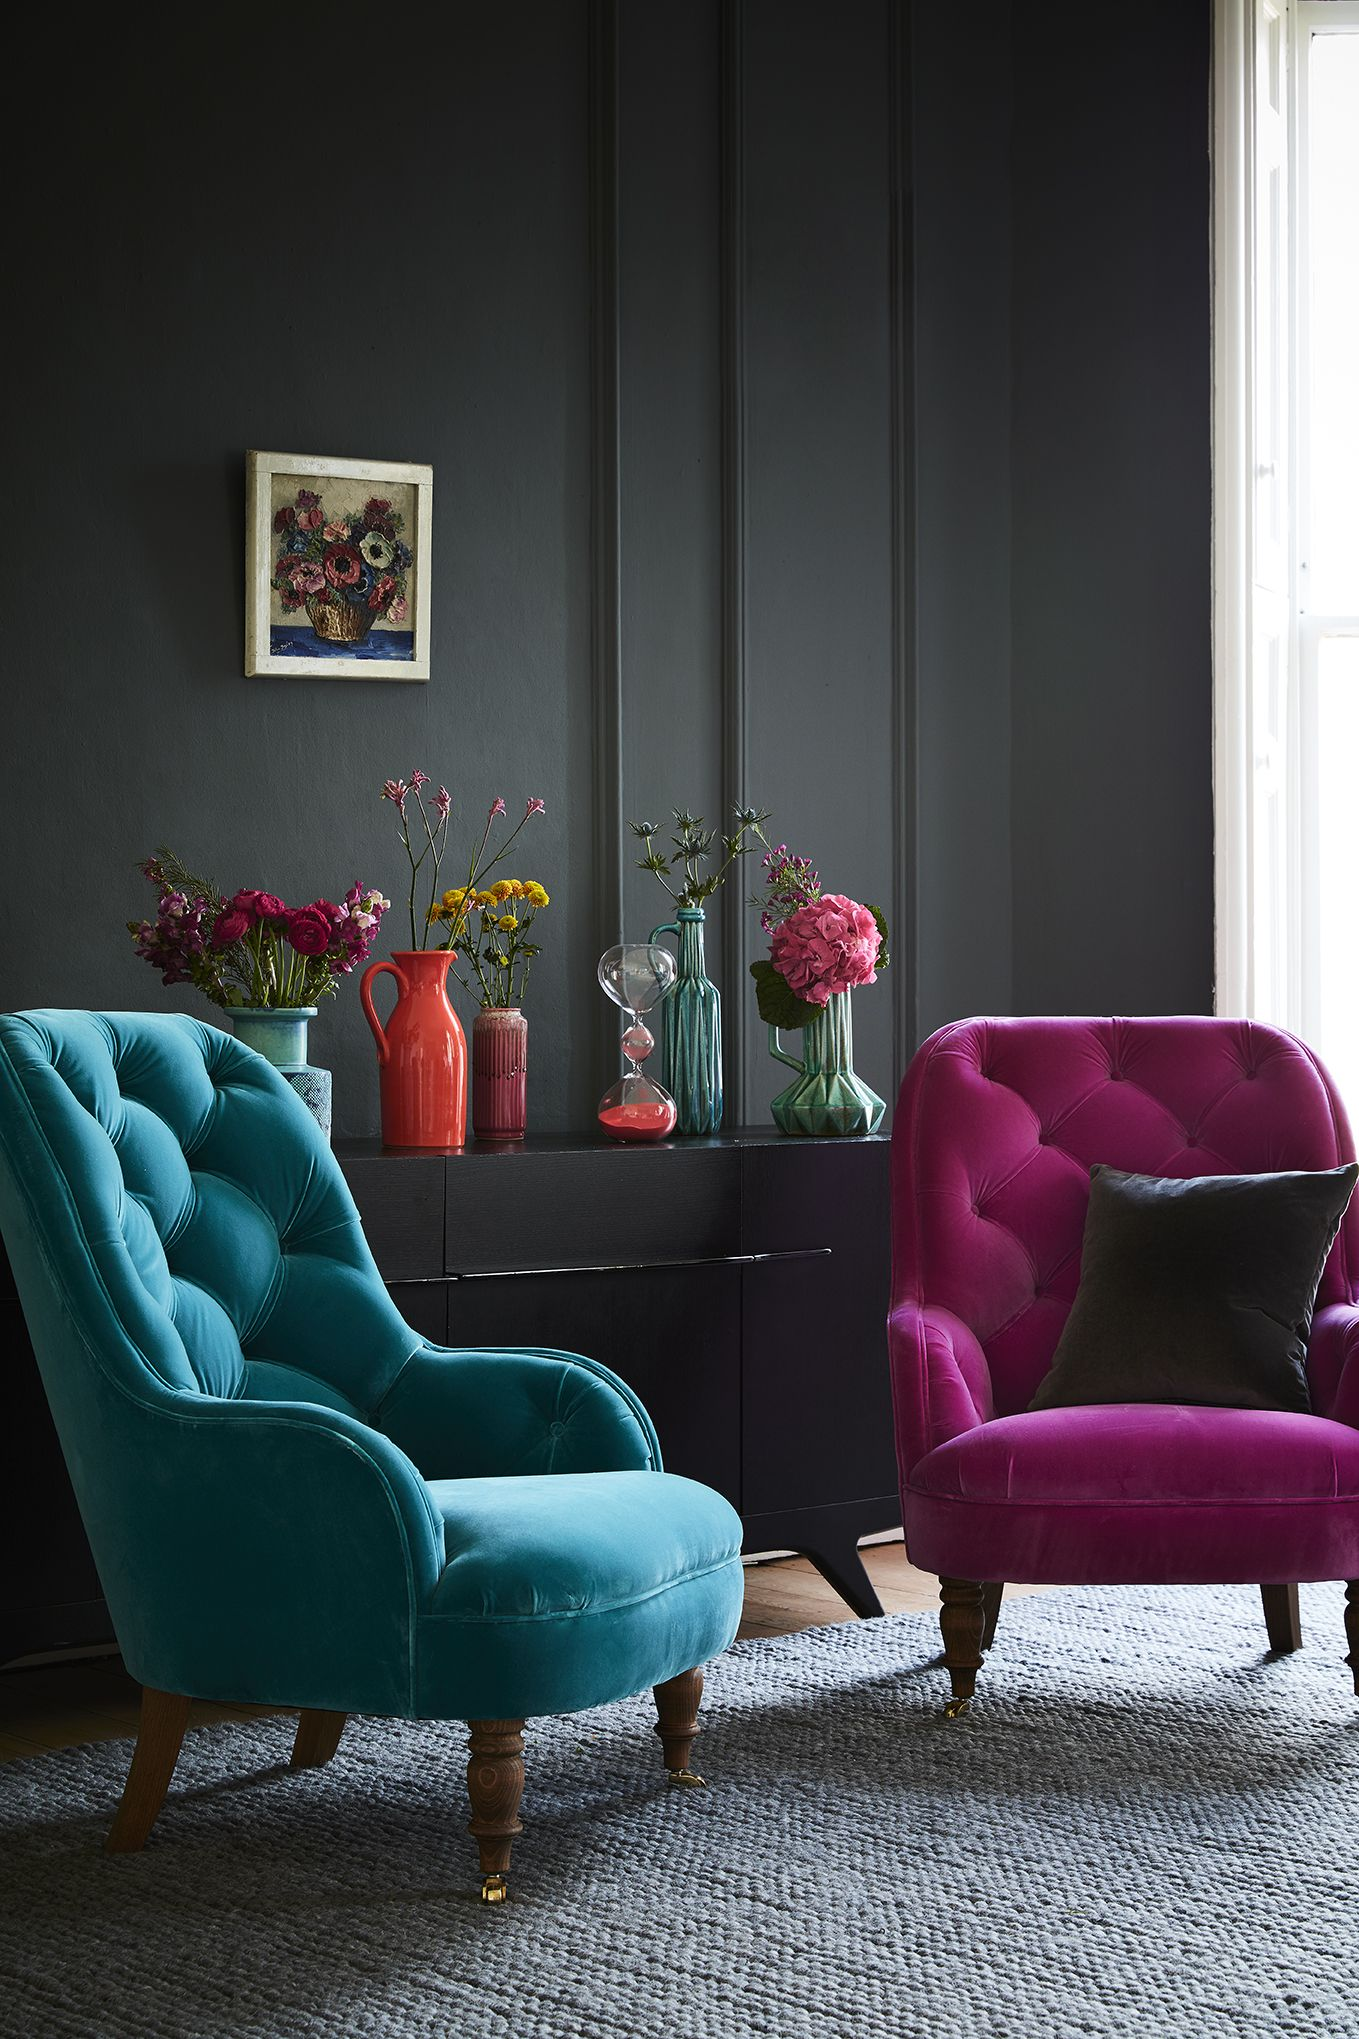 Our Penelope Armchair With Its High Tufted Back Makes It One